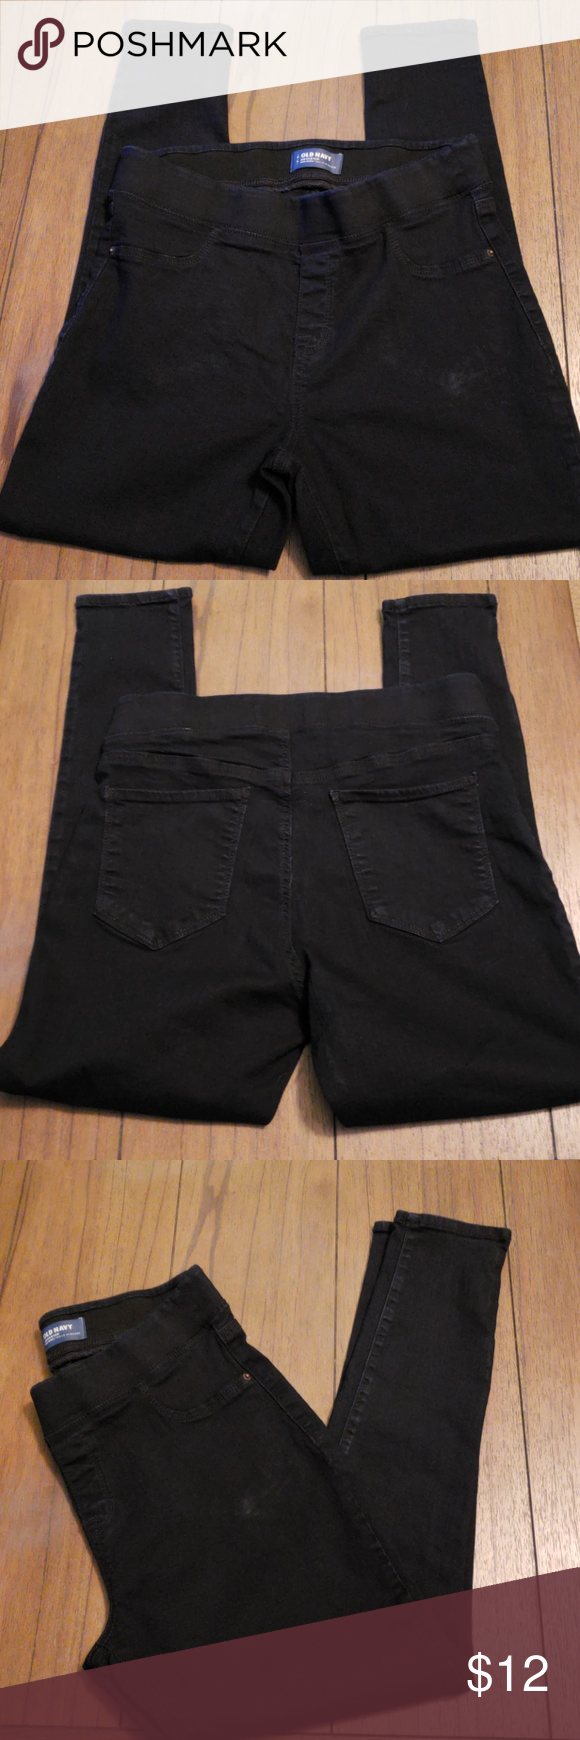 872d5c8c30 Old Navy Rockstar denim jeggings Old Navy Rockstar denim jeggings, only  worn once, elastic waist, front & back pockets, they are very dark blue  denim (they ...